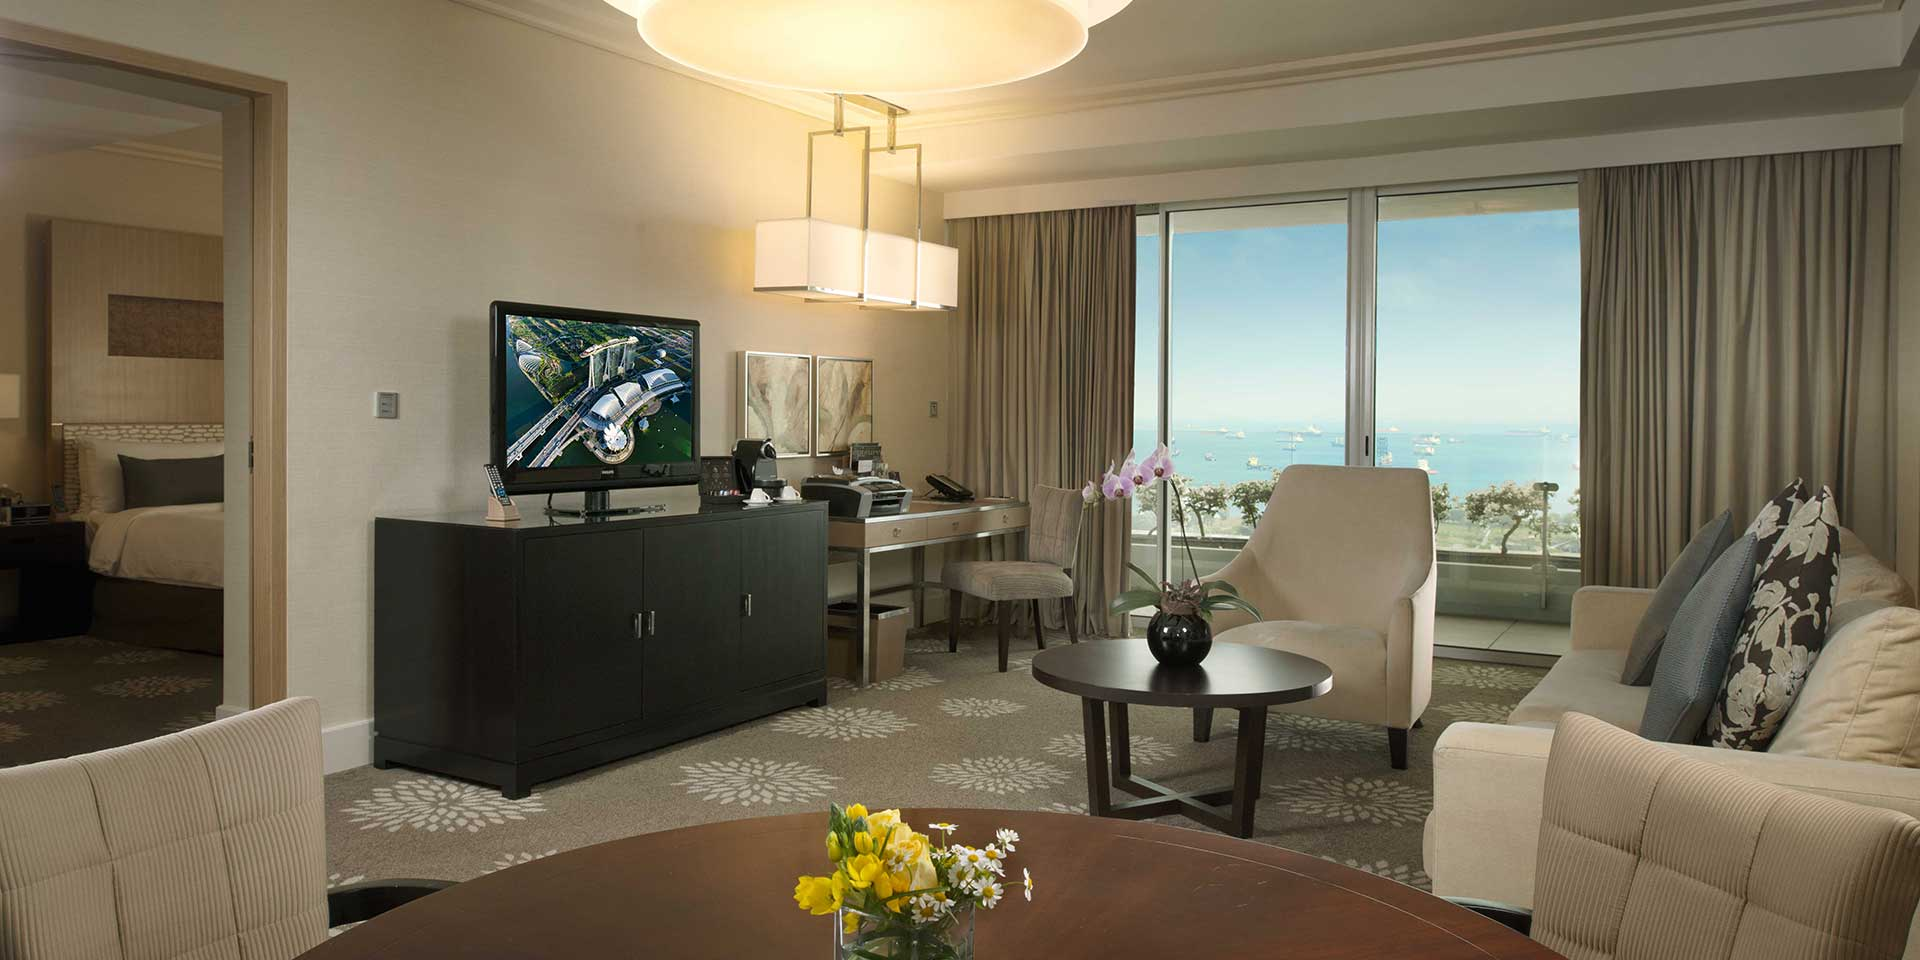 Bay suite in marina bay sands singapore hotel for 20 rooms hotel